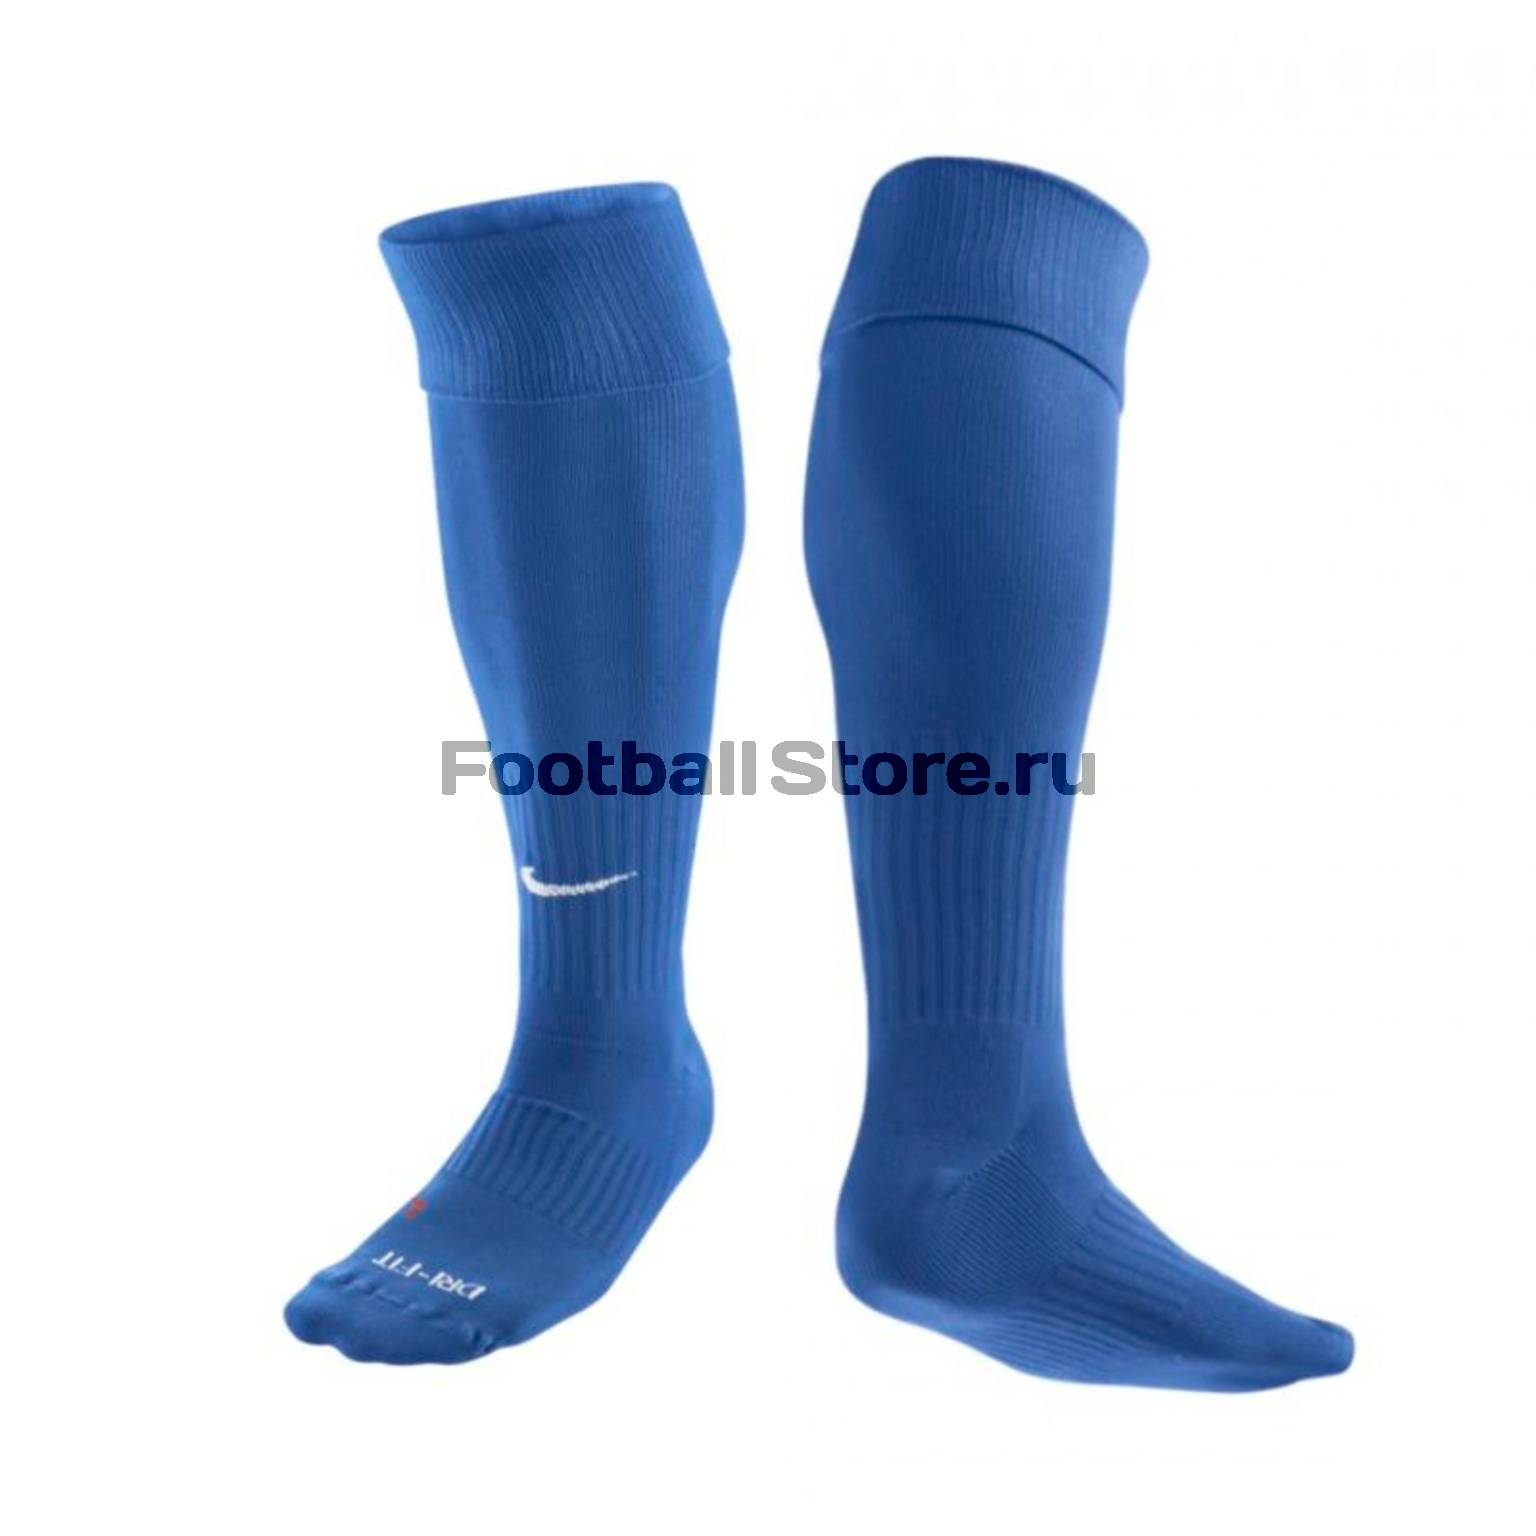 Гетры Nike Classic Football Dri-Fit SX4120-402 nike гетры nike classic ii sock 394386 670